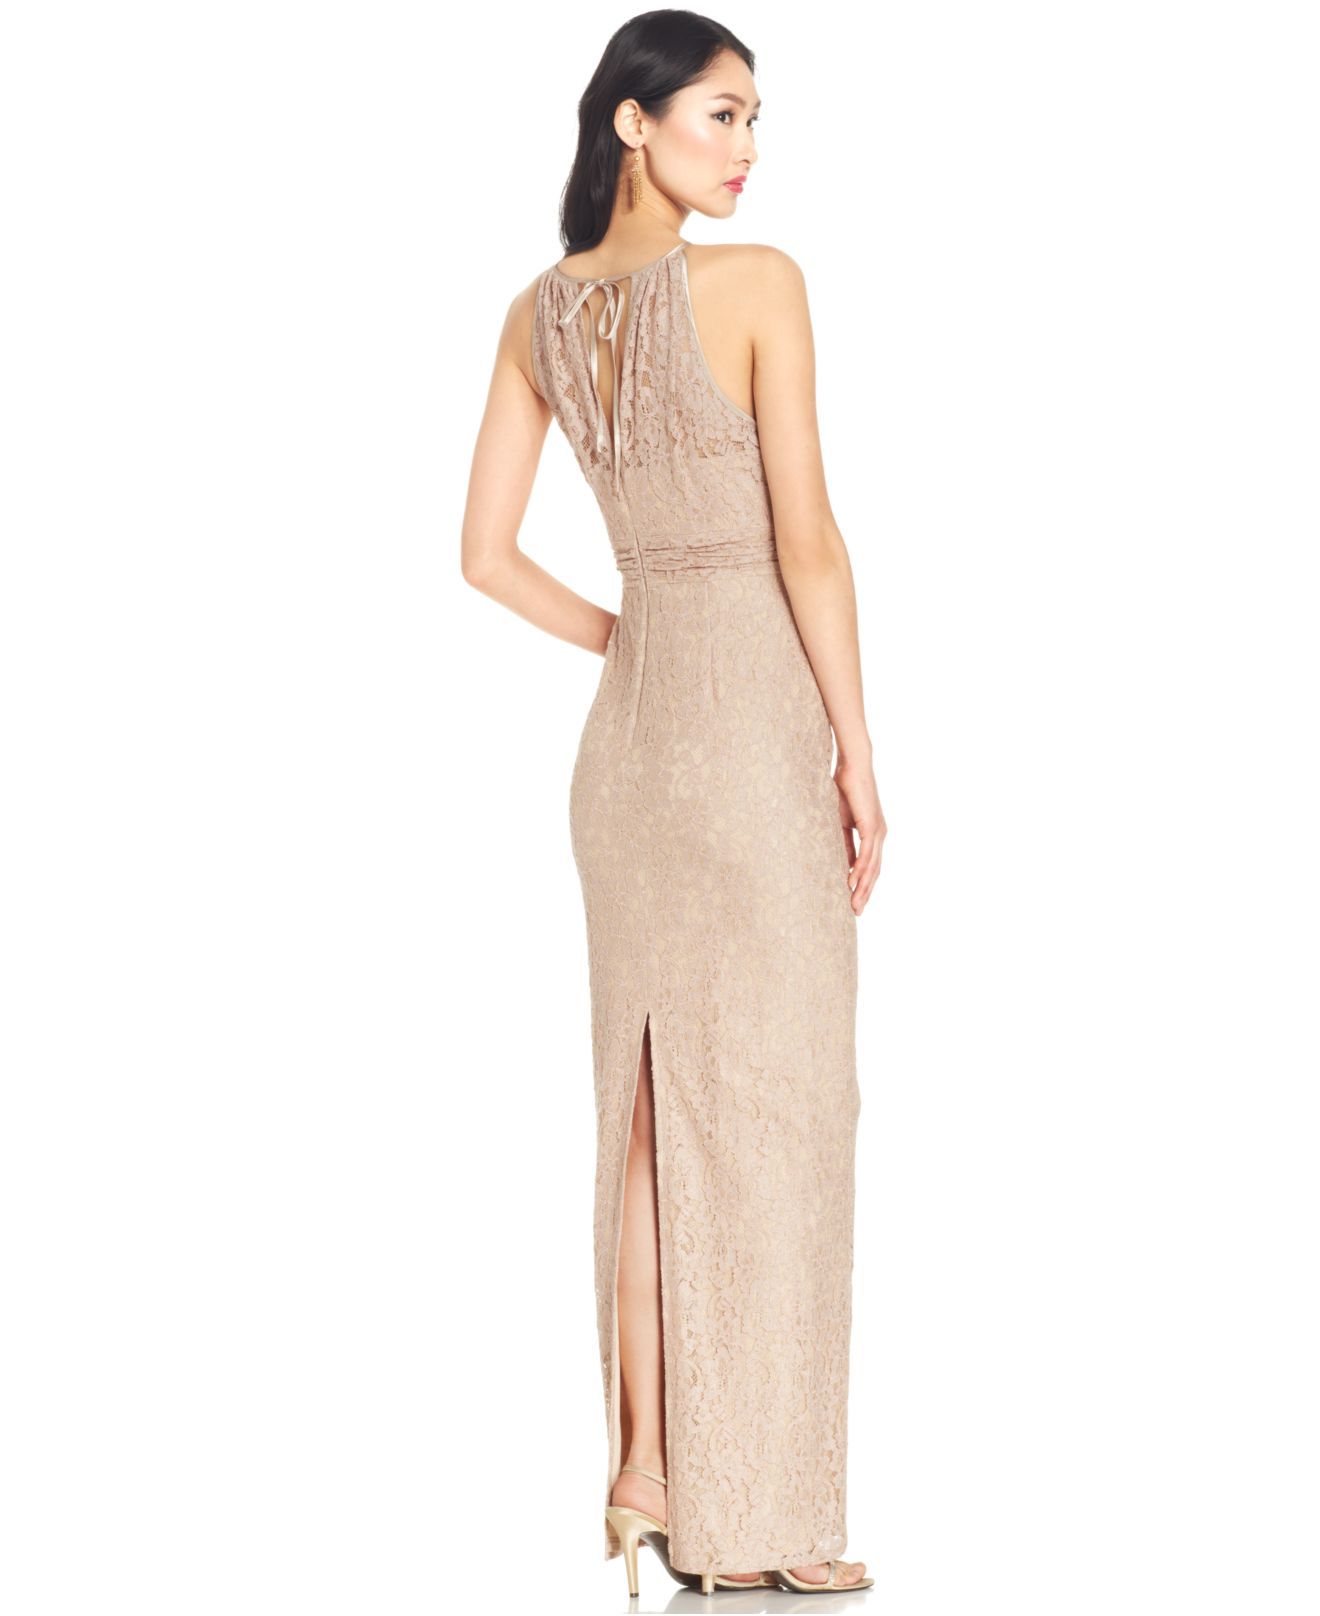 Lyst - Adrianna Papell Illusion Lace Halter Gown in Pink